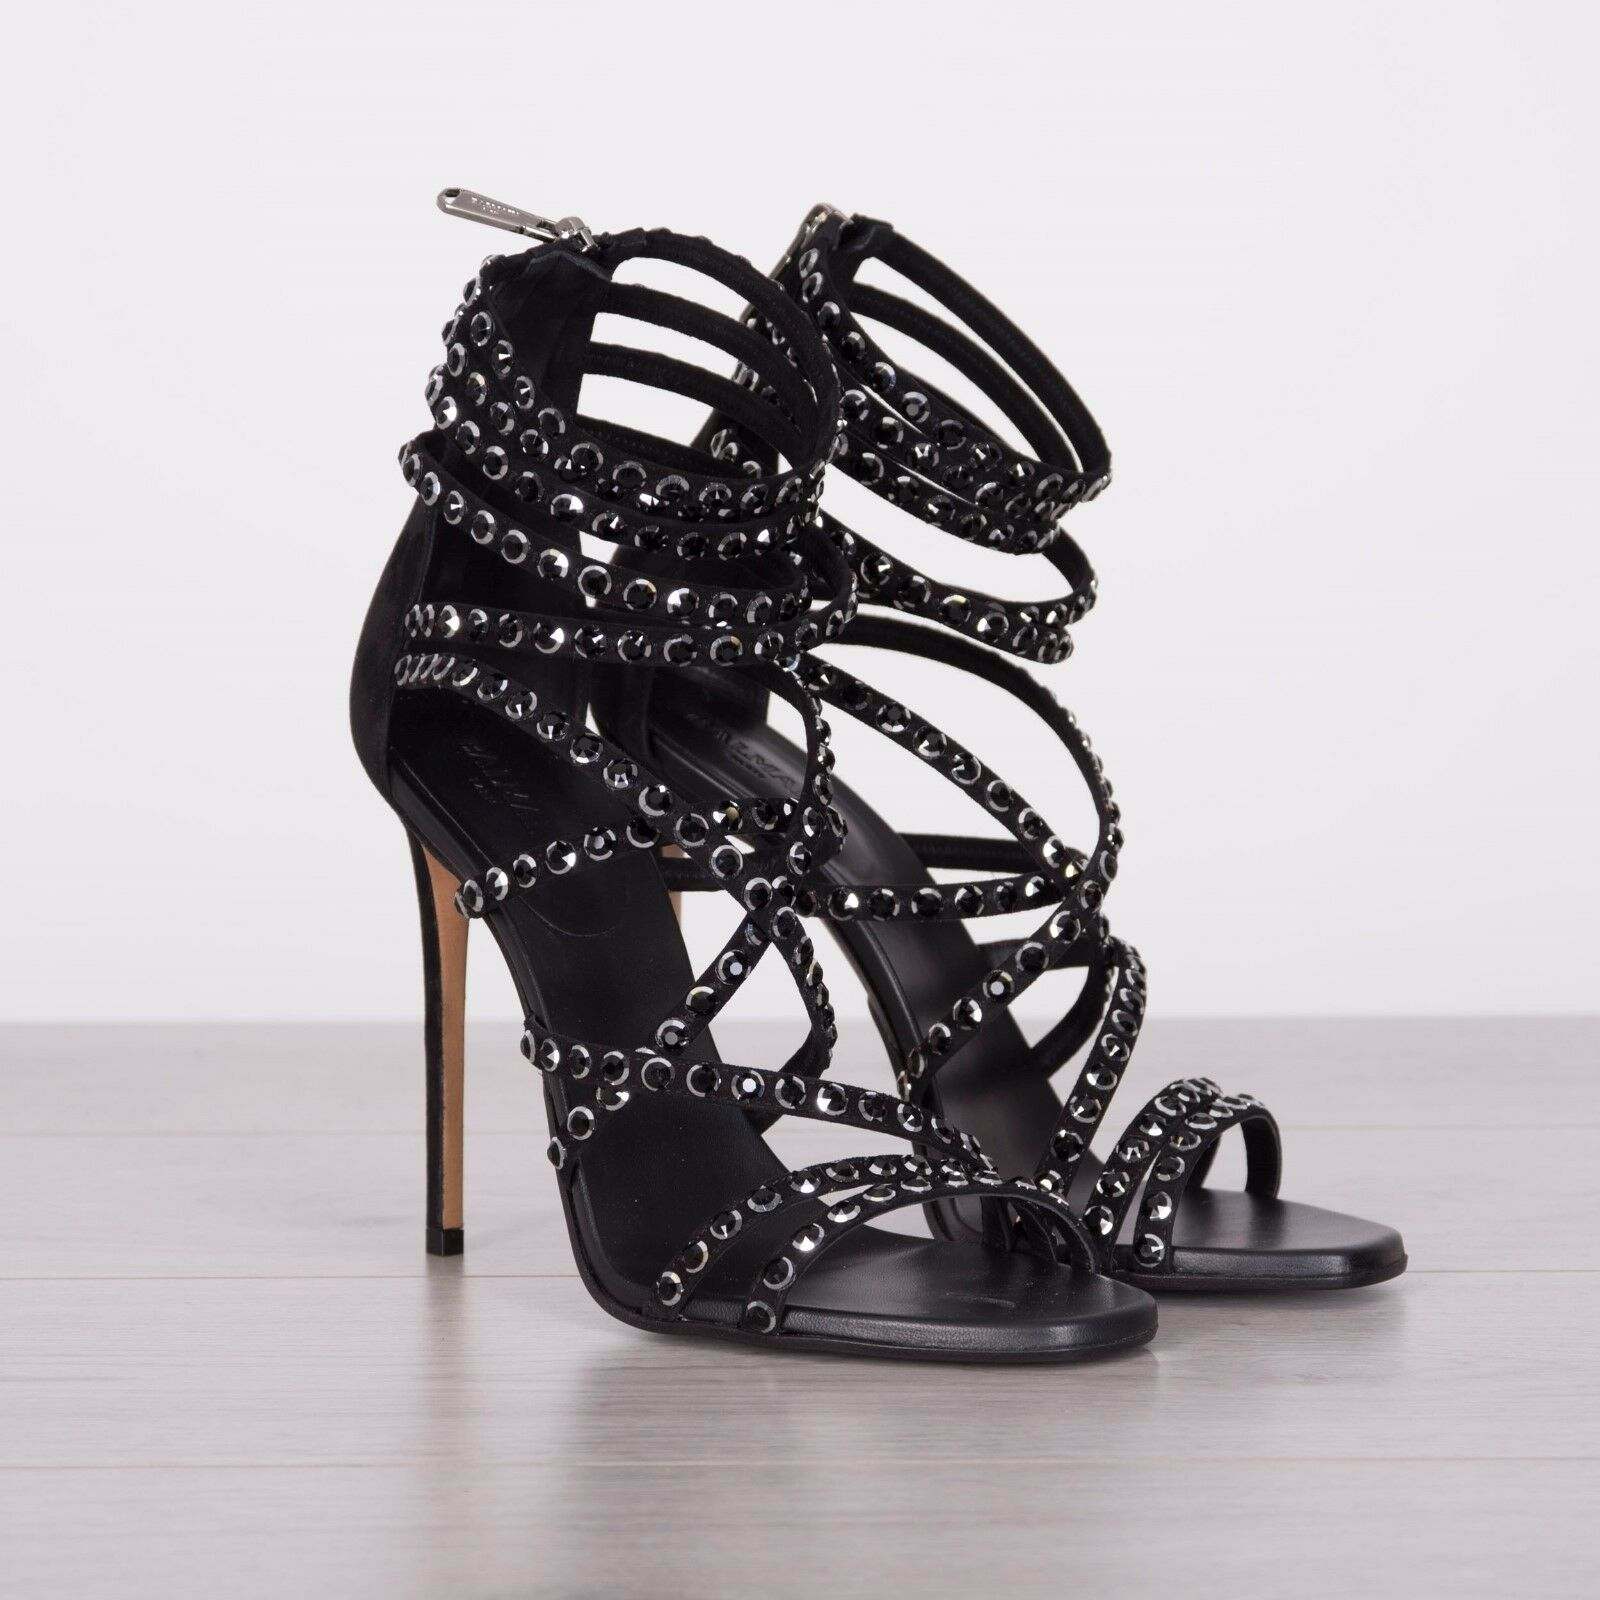 BALMAIN 1490  Authentic New Black Crystal Embellished Strappy High Heel Sandals